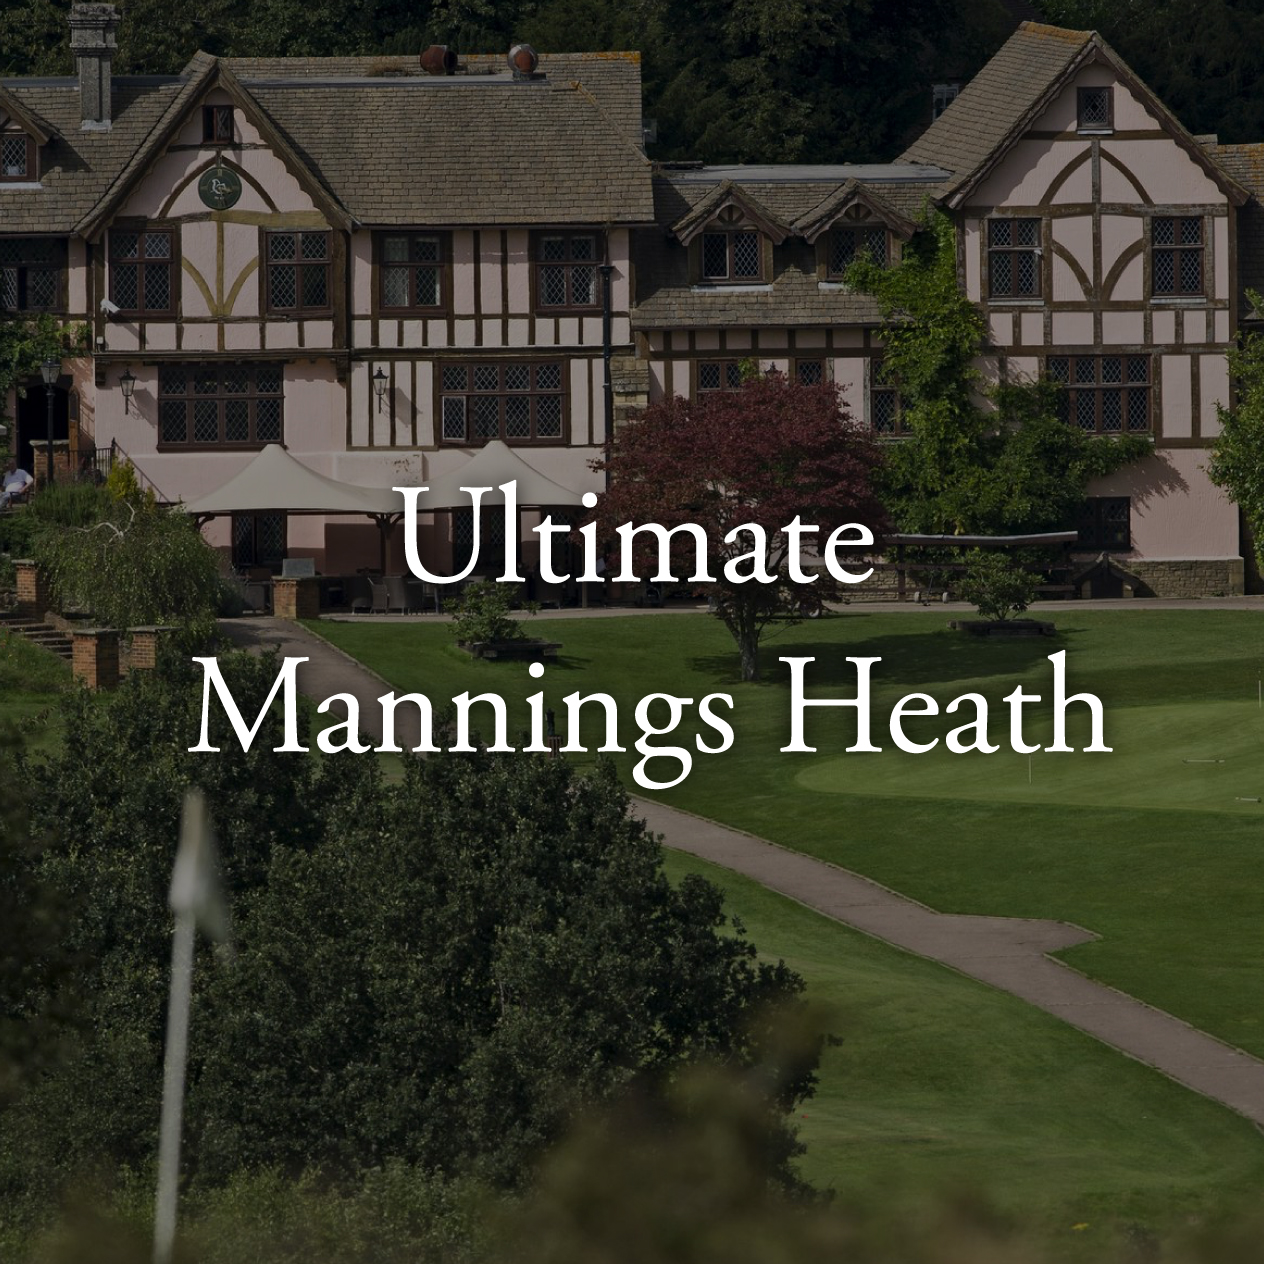 Ultimate mannings heath.jpg